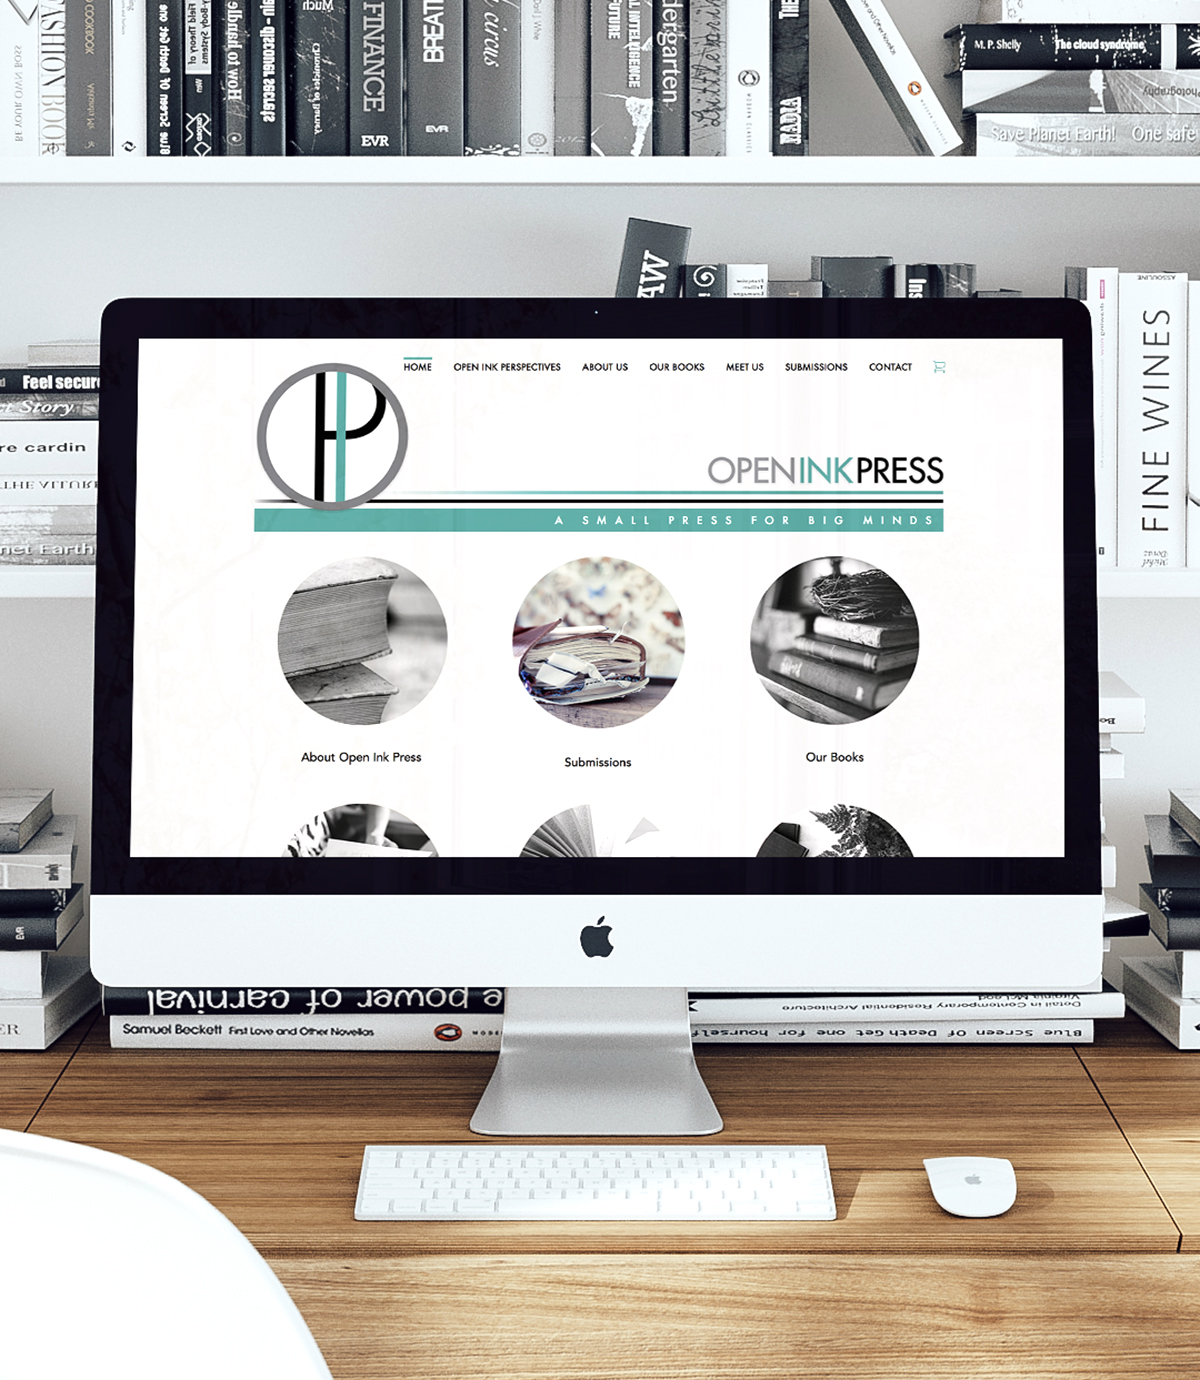 Open Ink Press website by Printish